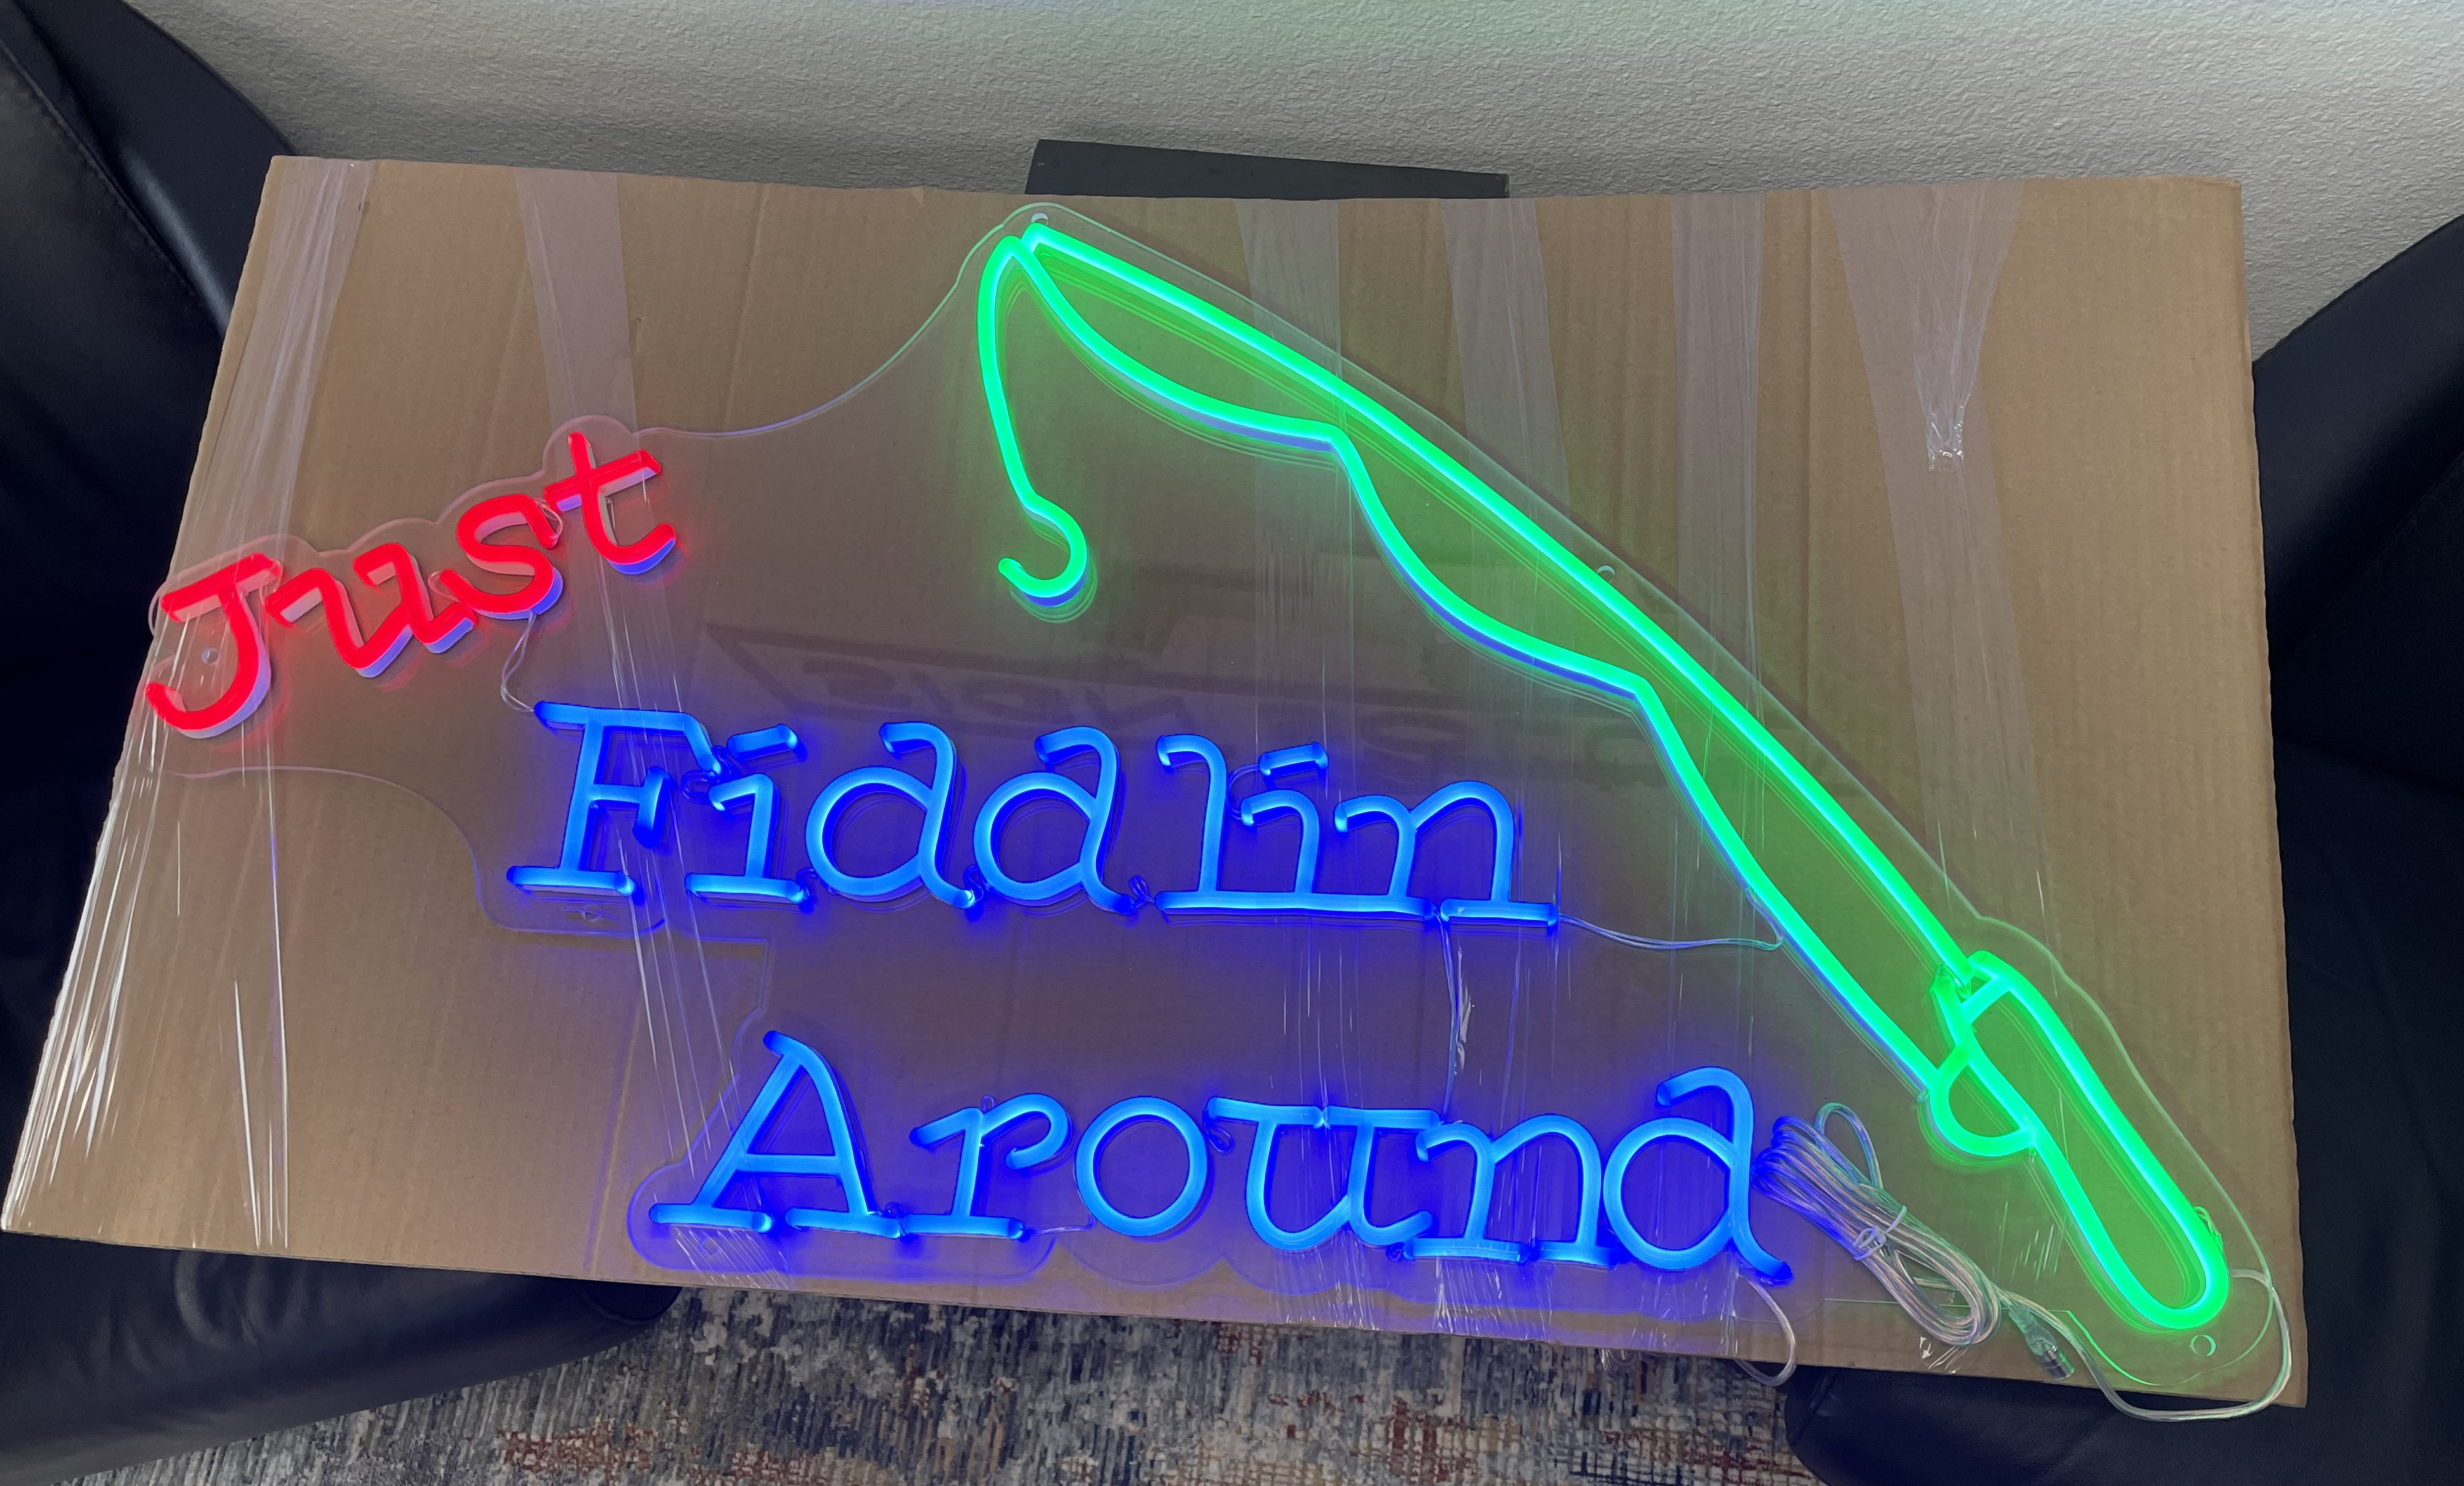 """The holidays are approaching and it's time to decorate places with signage even give them as gifts. Like this neon sign gift spelling out """"Just Fiddlin Around."""""""